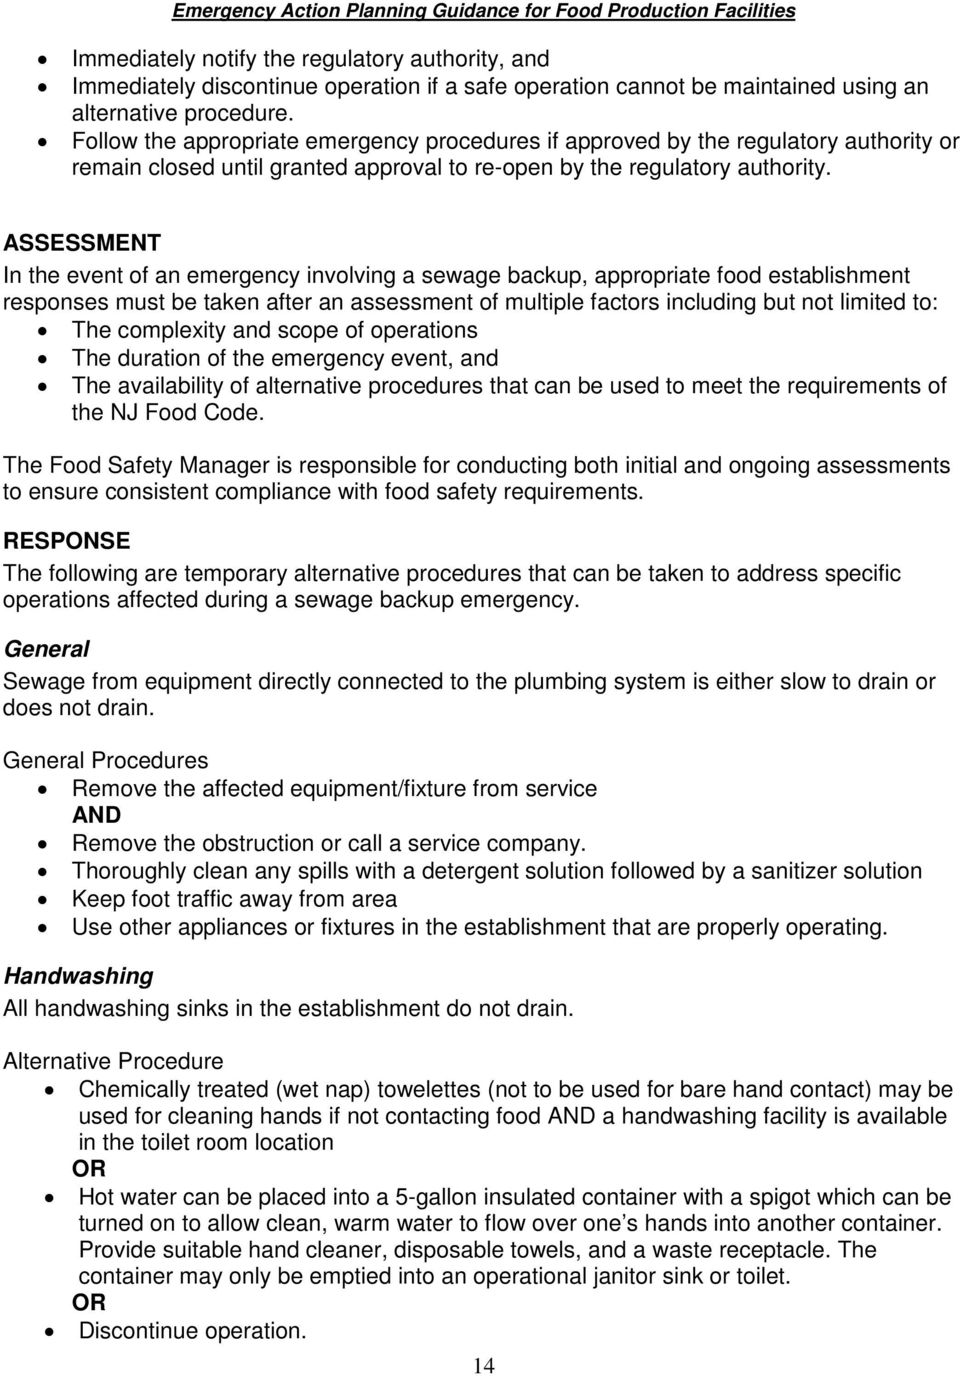 ASSESSMENT In the event of an emergency involving a sewage backup, appropriate food establishment responses must be taken after an assessment of multiple factors including but not limited to: The